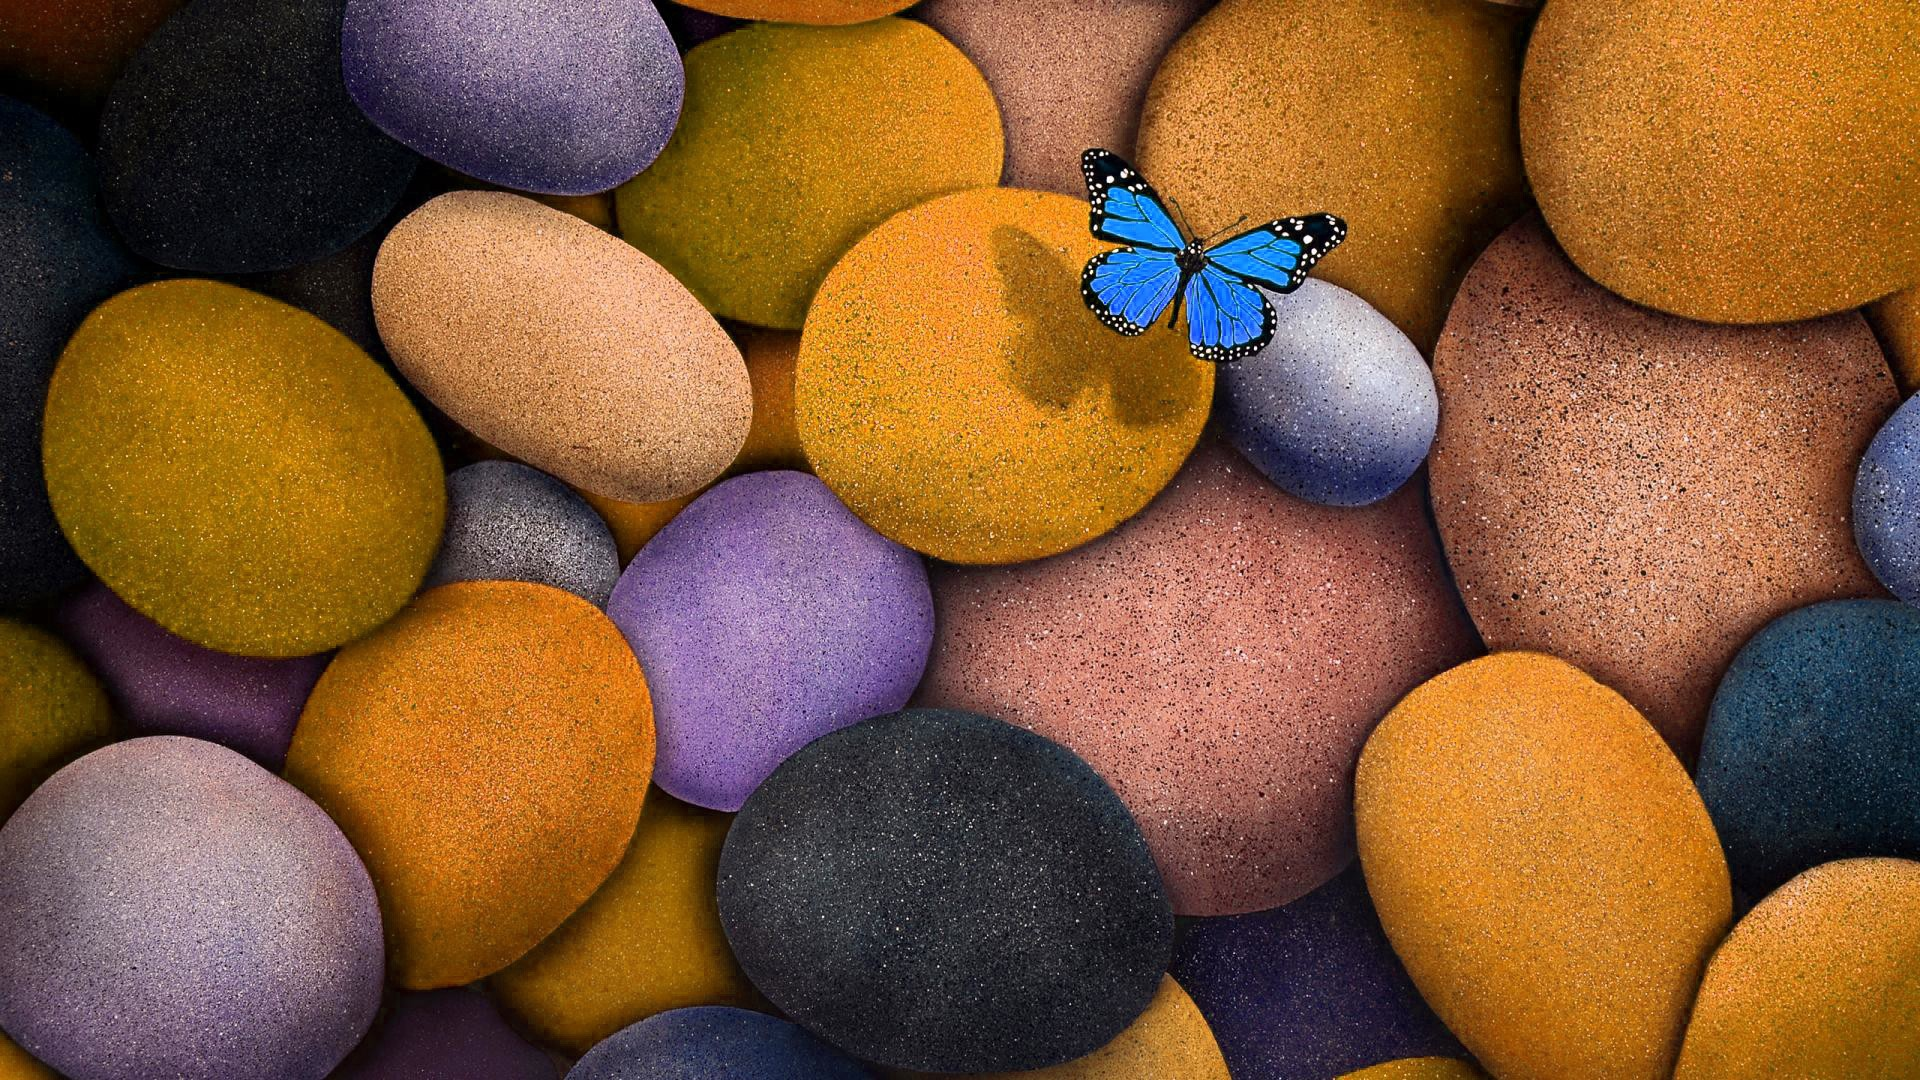 3d Wallpaper Hd For Laptop - Pretty Butterfly Pictures For Desktop Background , HD Wallpaper & Backgrounds